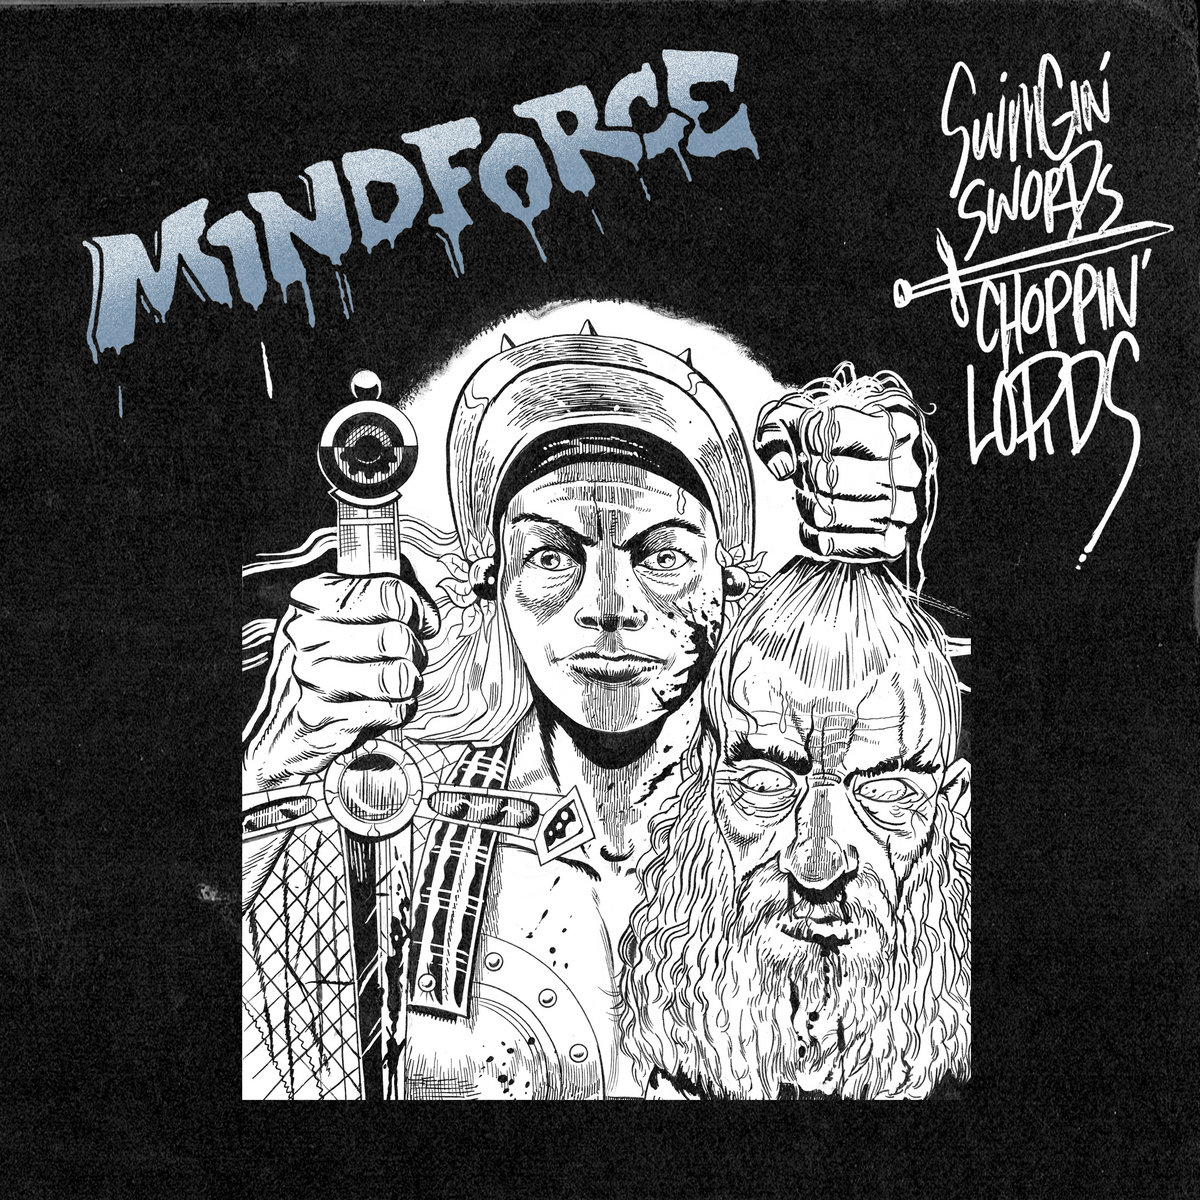 Mindforce – Swinging Swords, Choppin' Lords